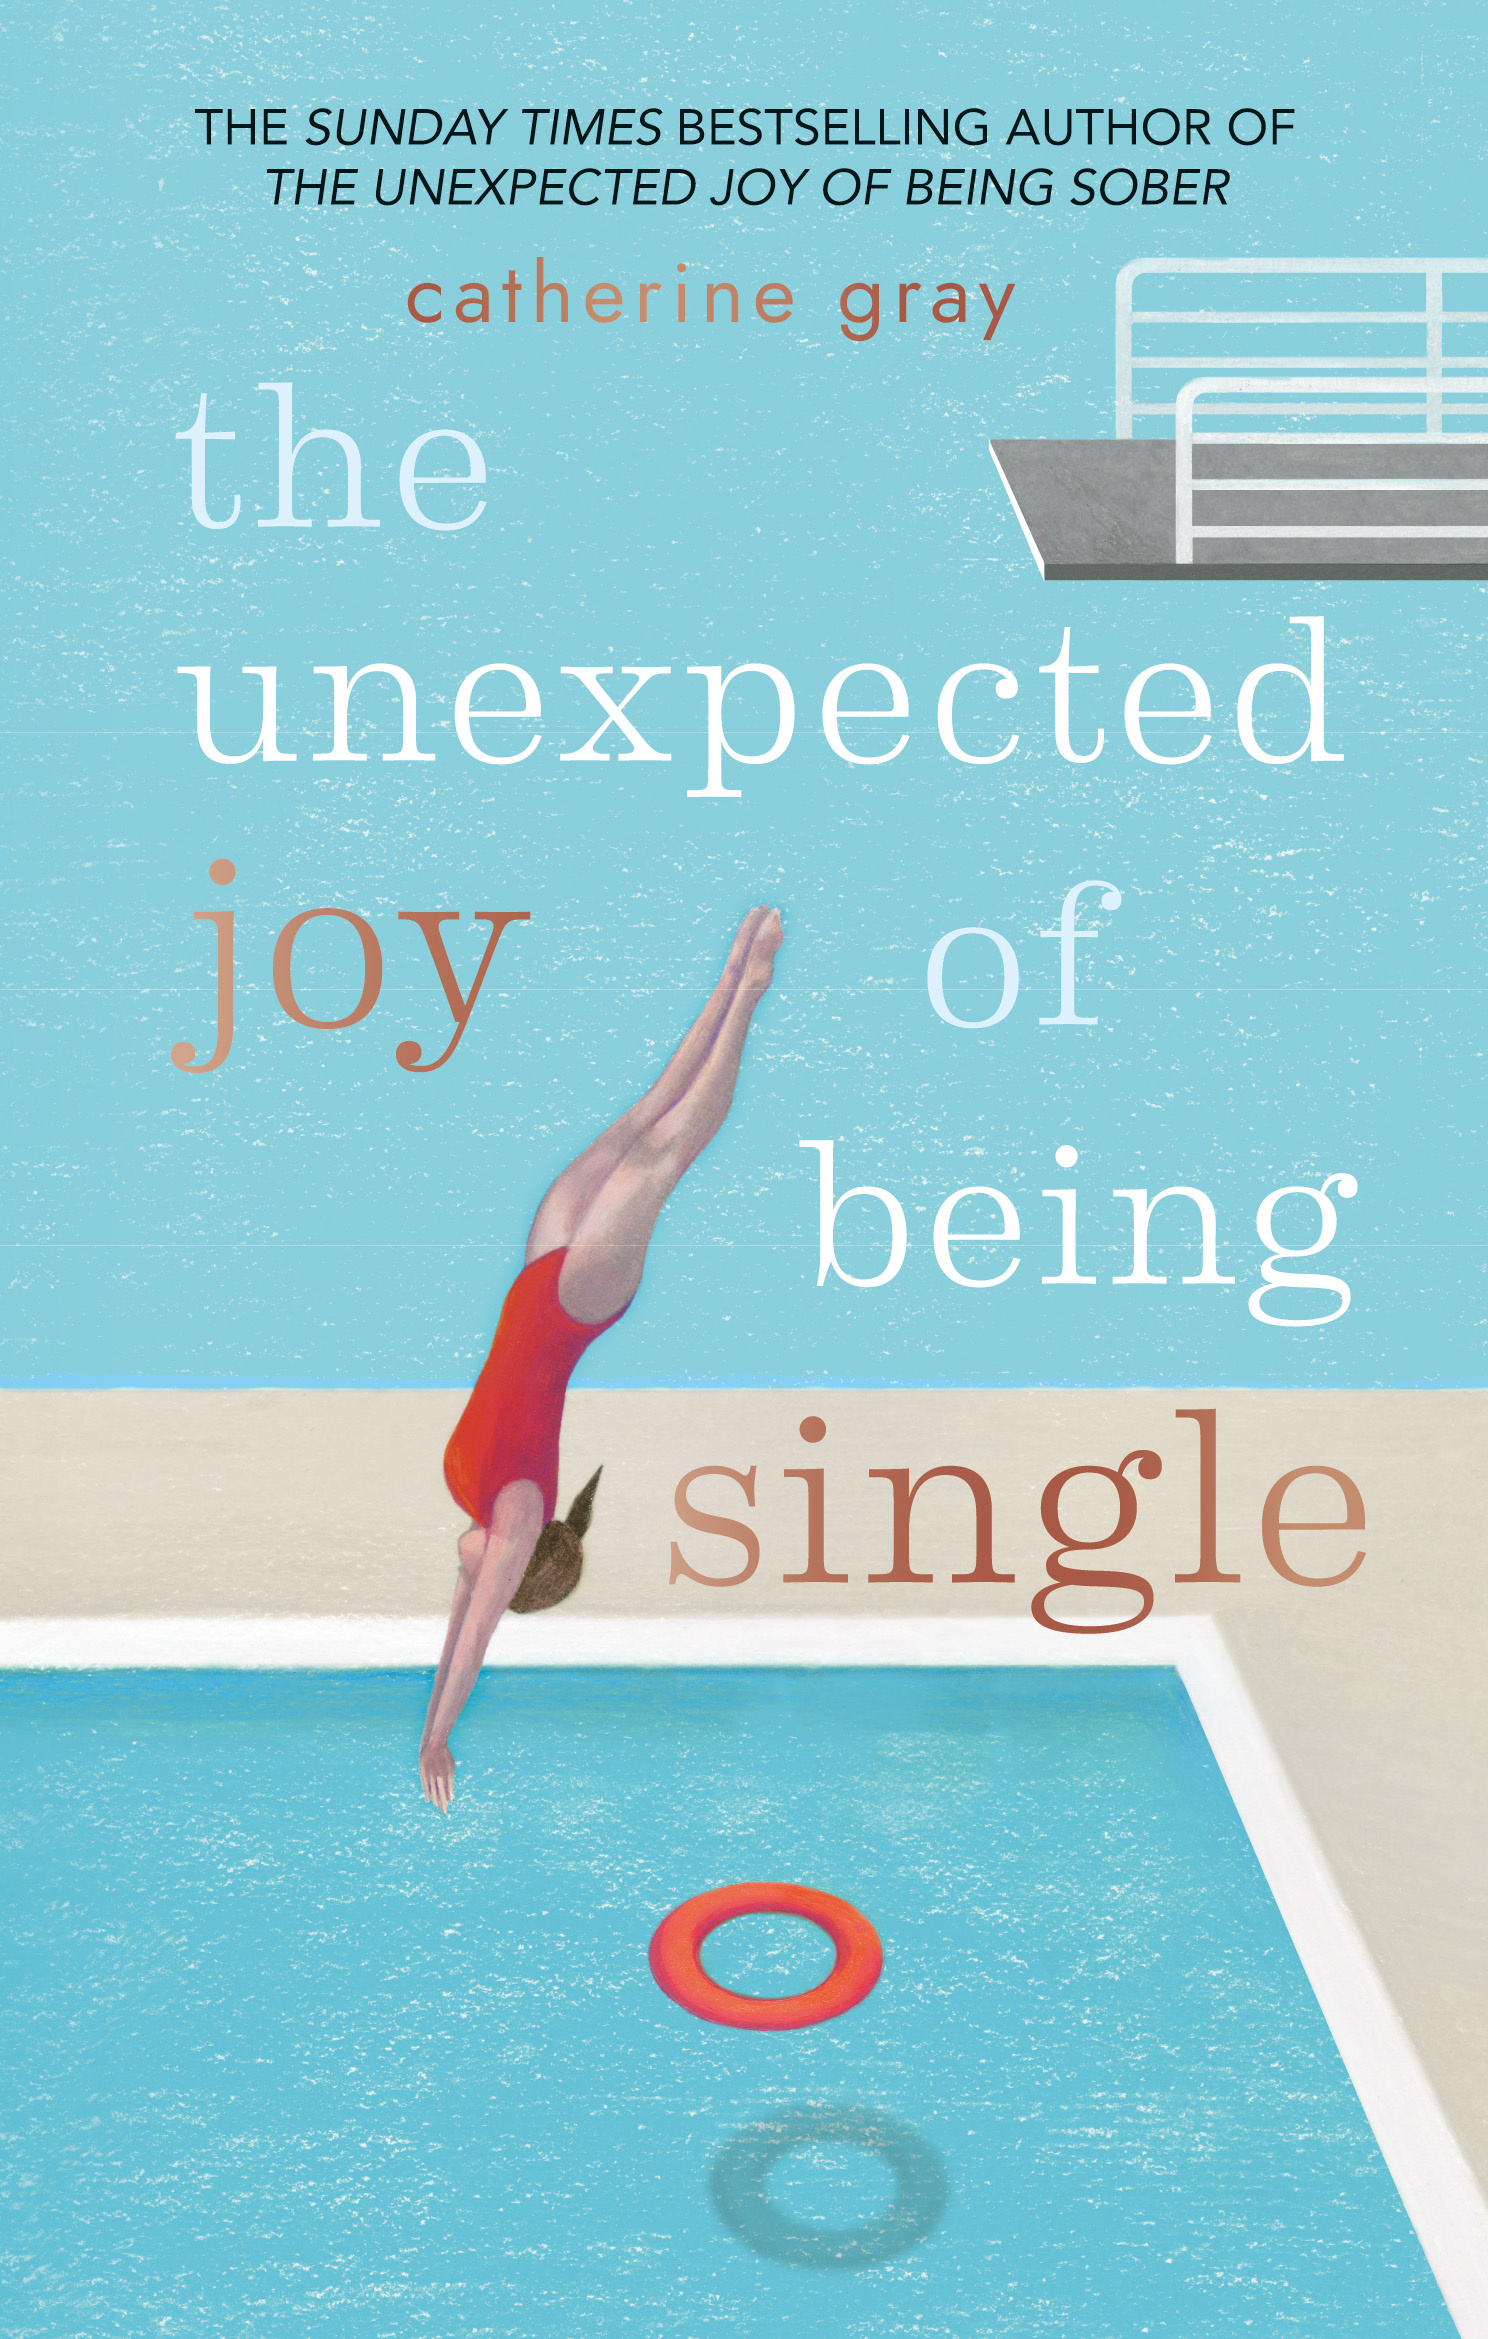 The Unexpected Joy of Being SINGLE: Locate your happily single serenity